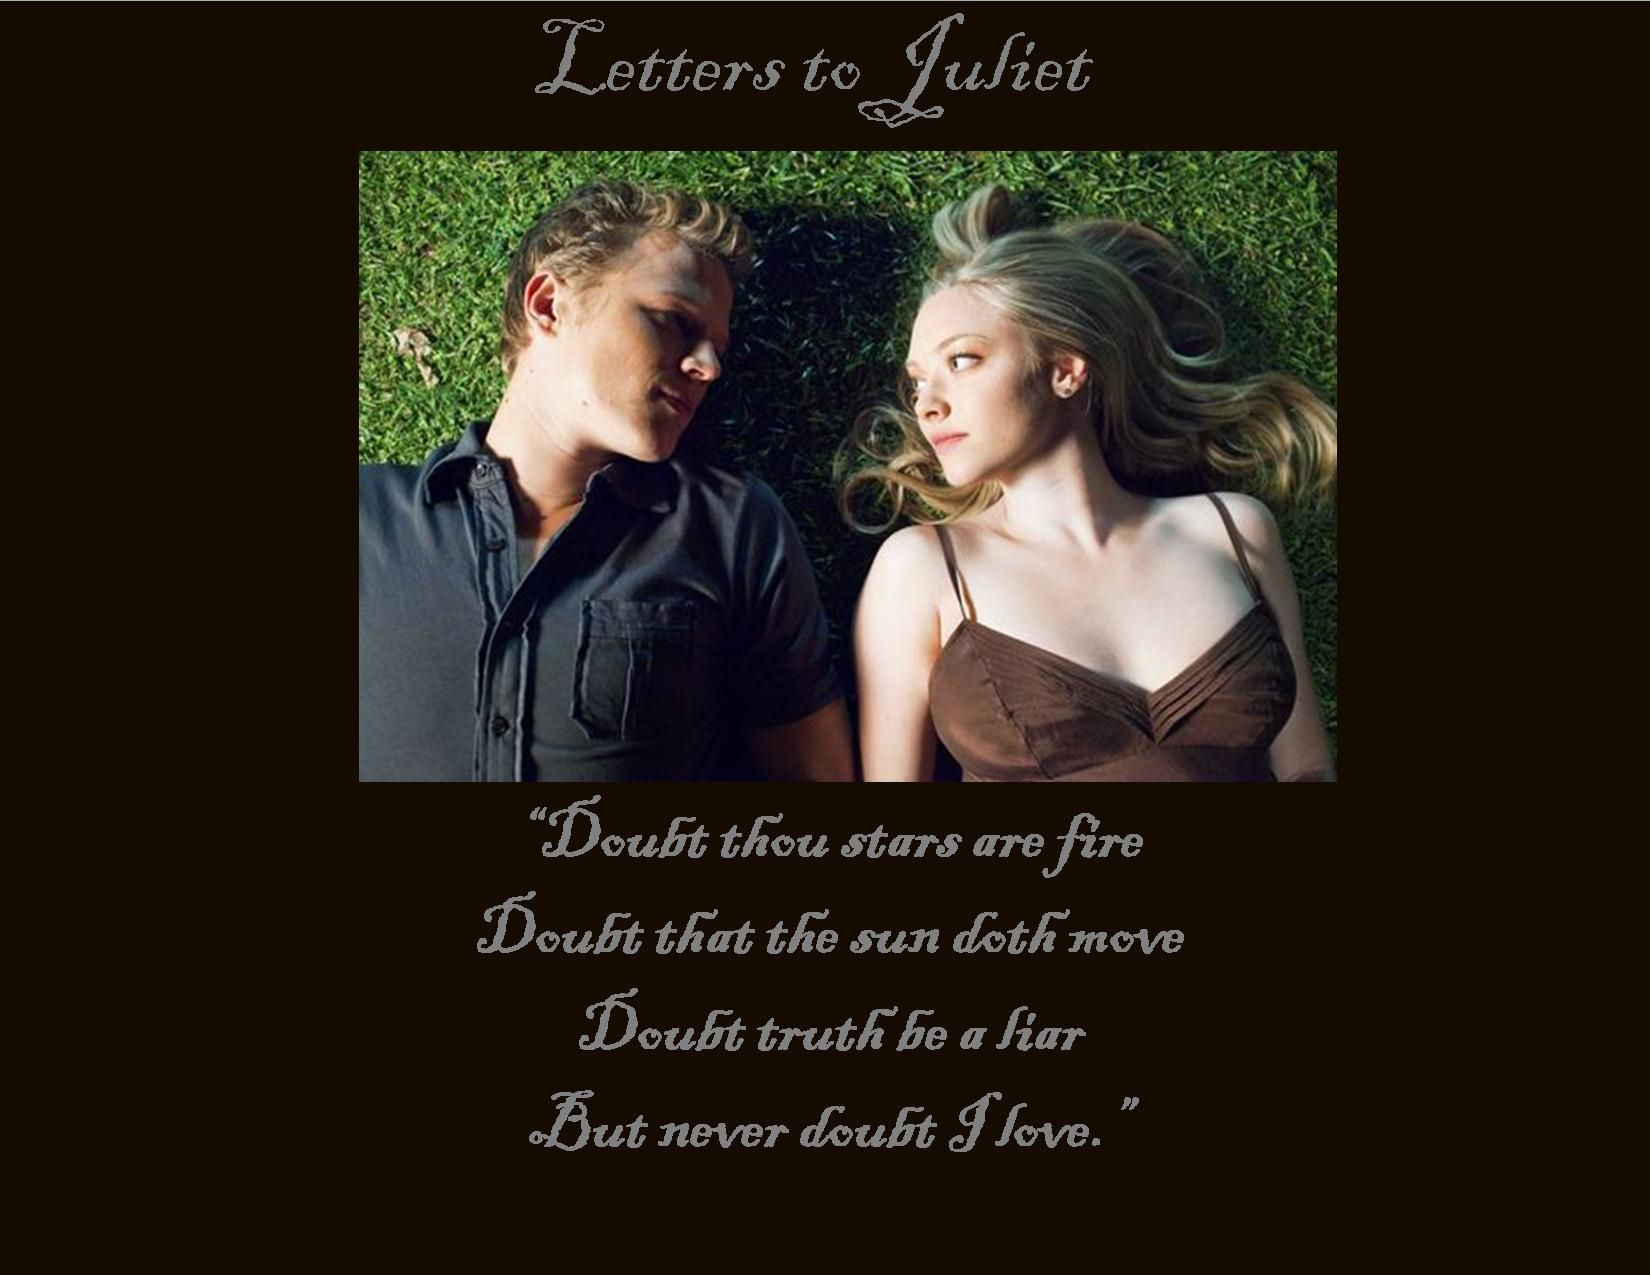 My favorite Shakespeare quote in one of my favorite movies Letters to Juliet god do I love thos